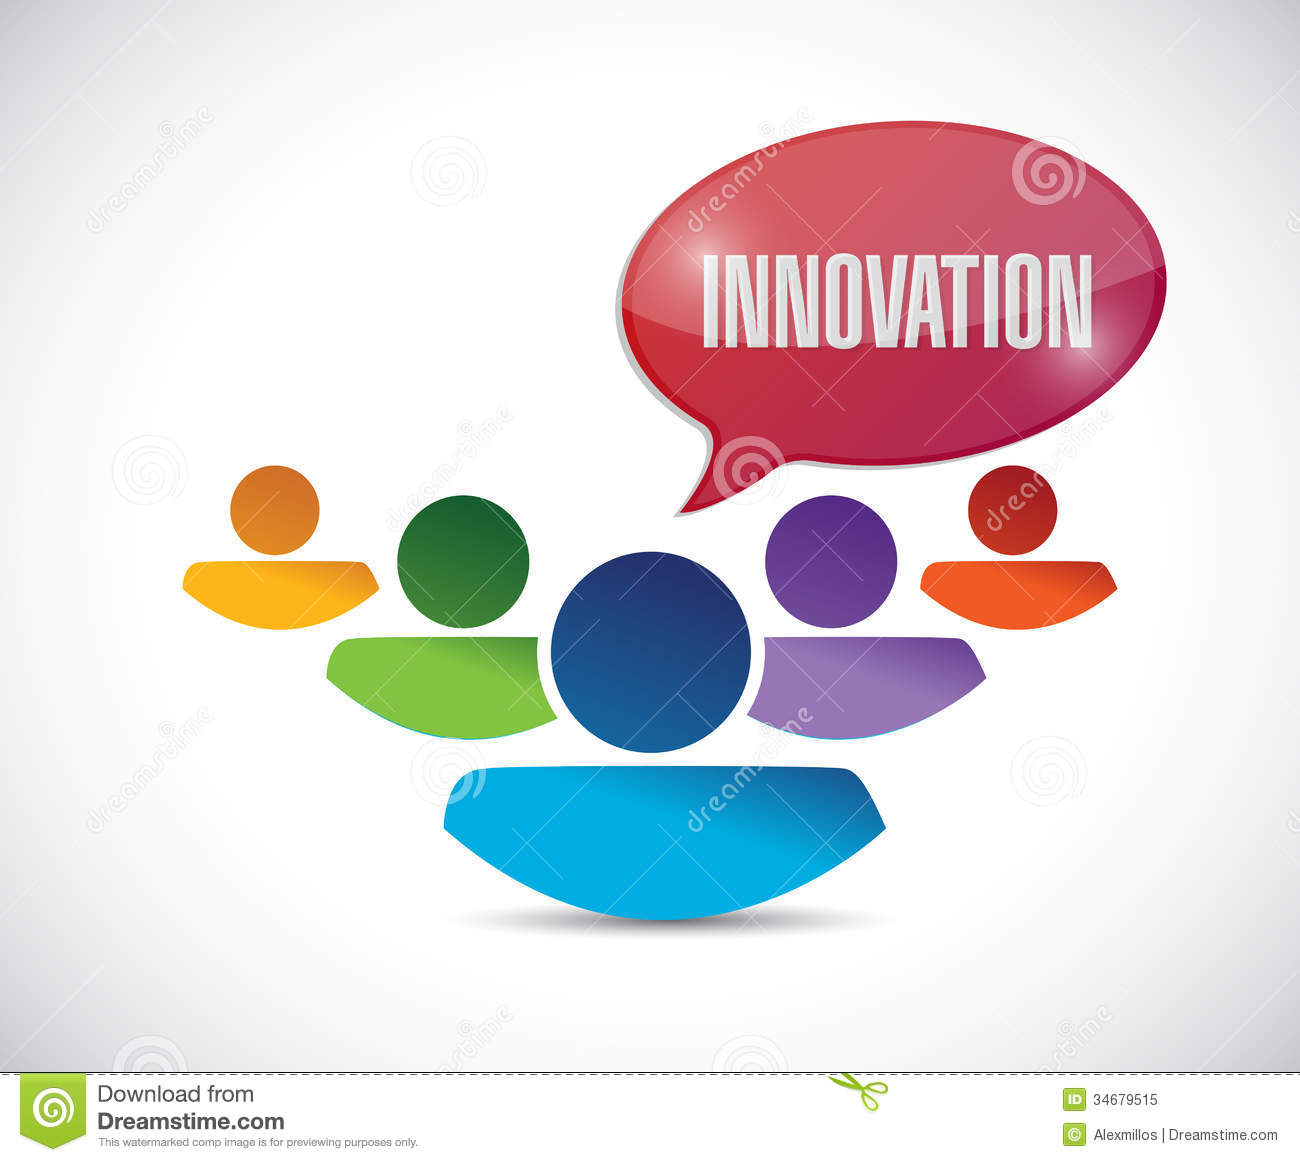 a discussion on innovation To ensure that good ideas are spotted and developed, companies create  discussion frameworks, such as innovation days and challenges.